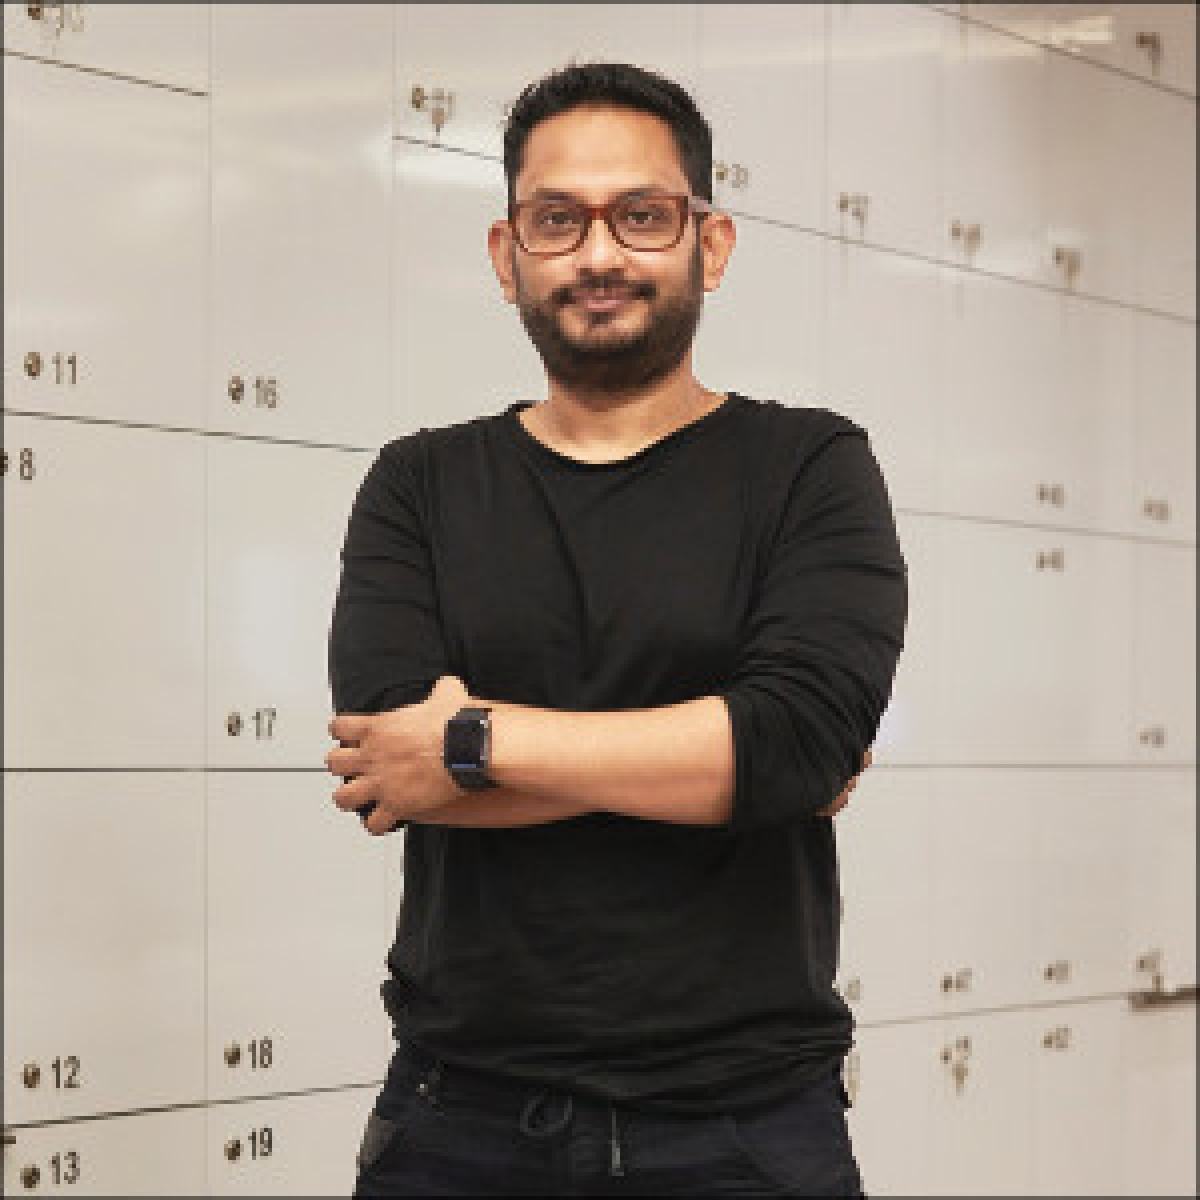 Dheeraj Sinha and Rajdeepak Das are new managing directors of Leo Burnett India